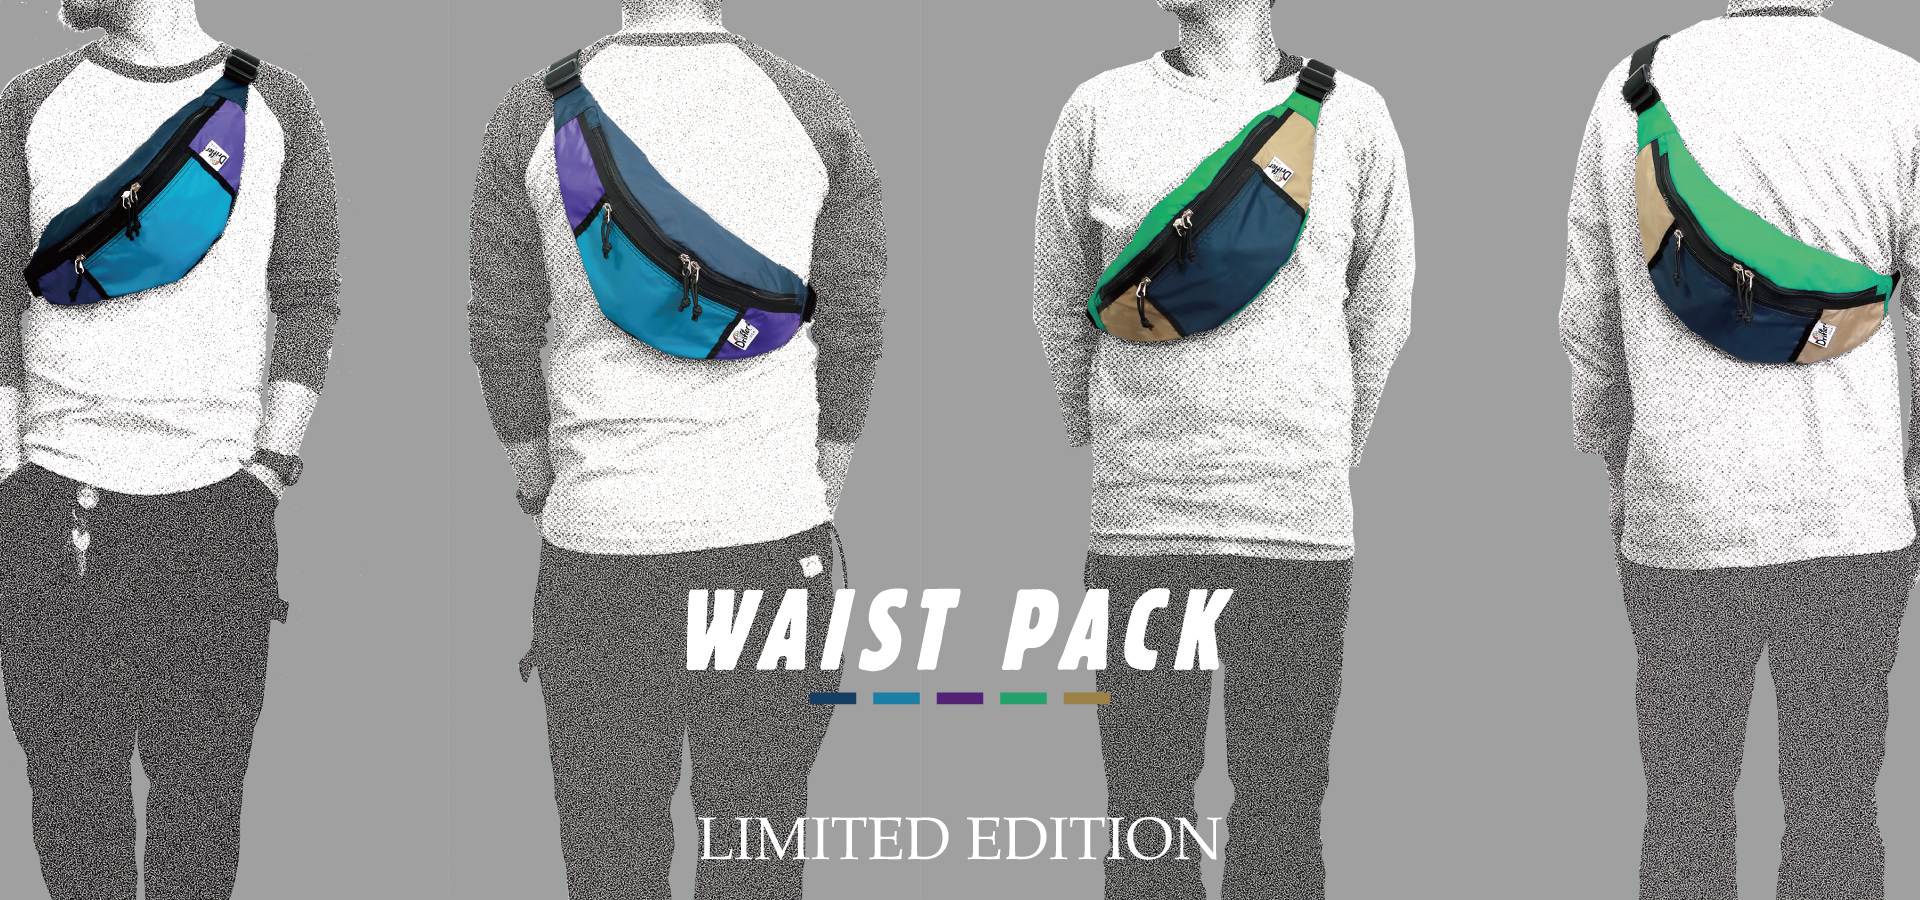 WAIST PACK LIMITED